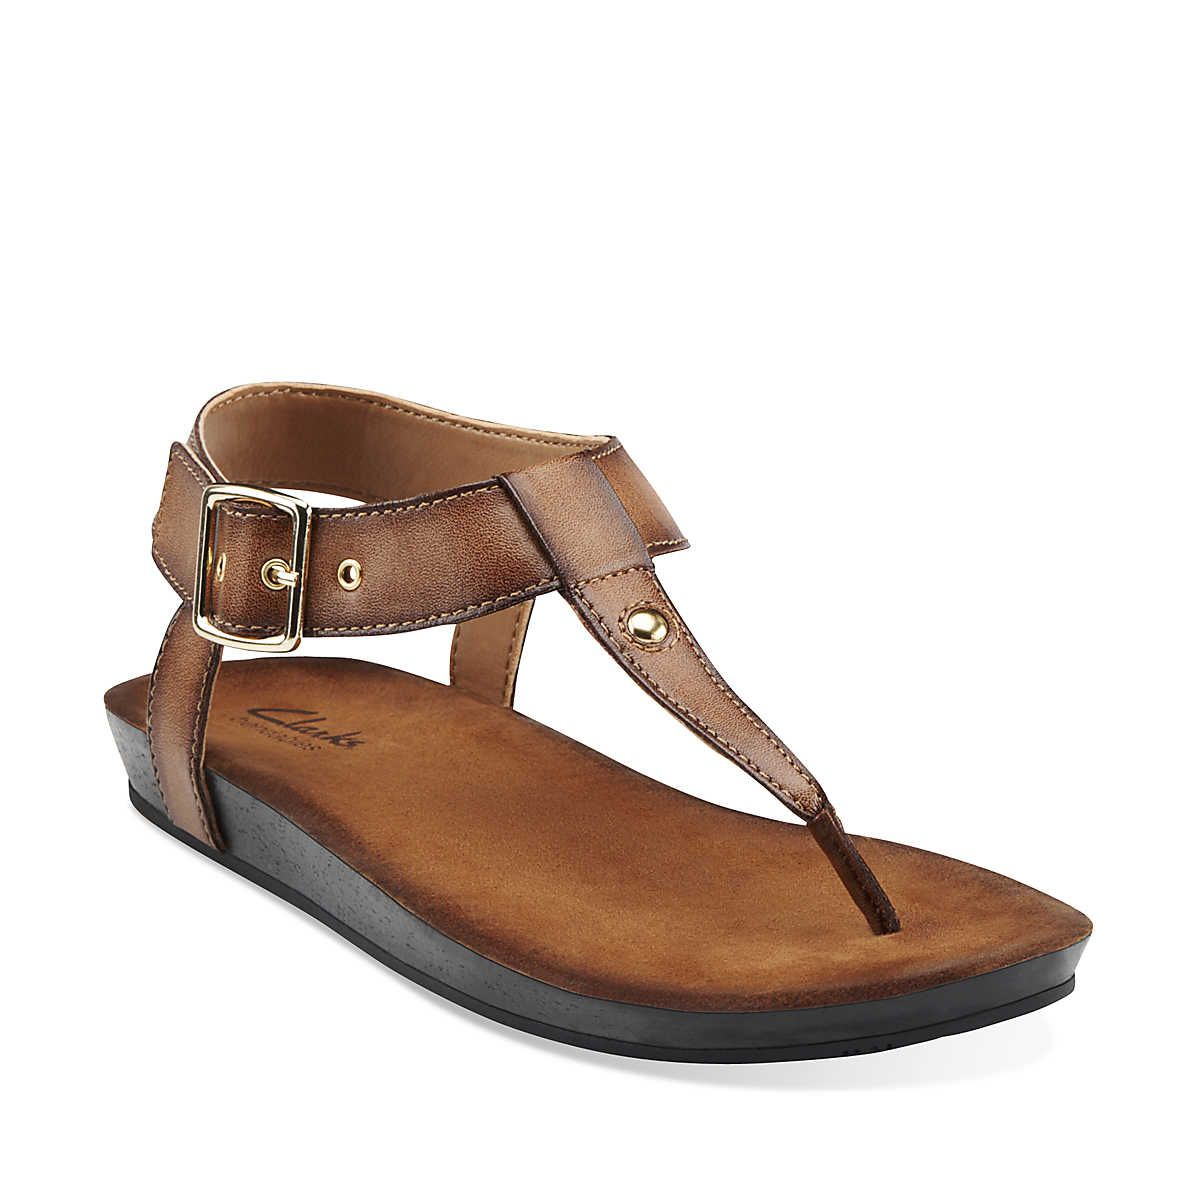 acbca70c6a2 Lynx Charm in Honey Synthetic - Womens Sandals from Clarks